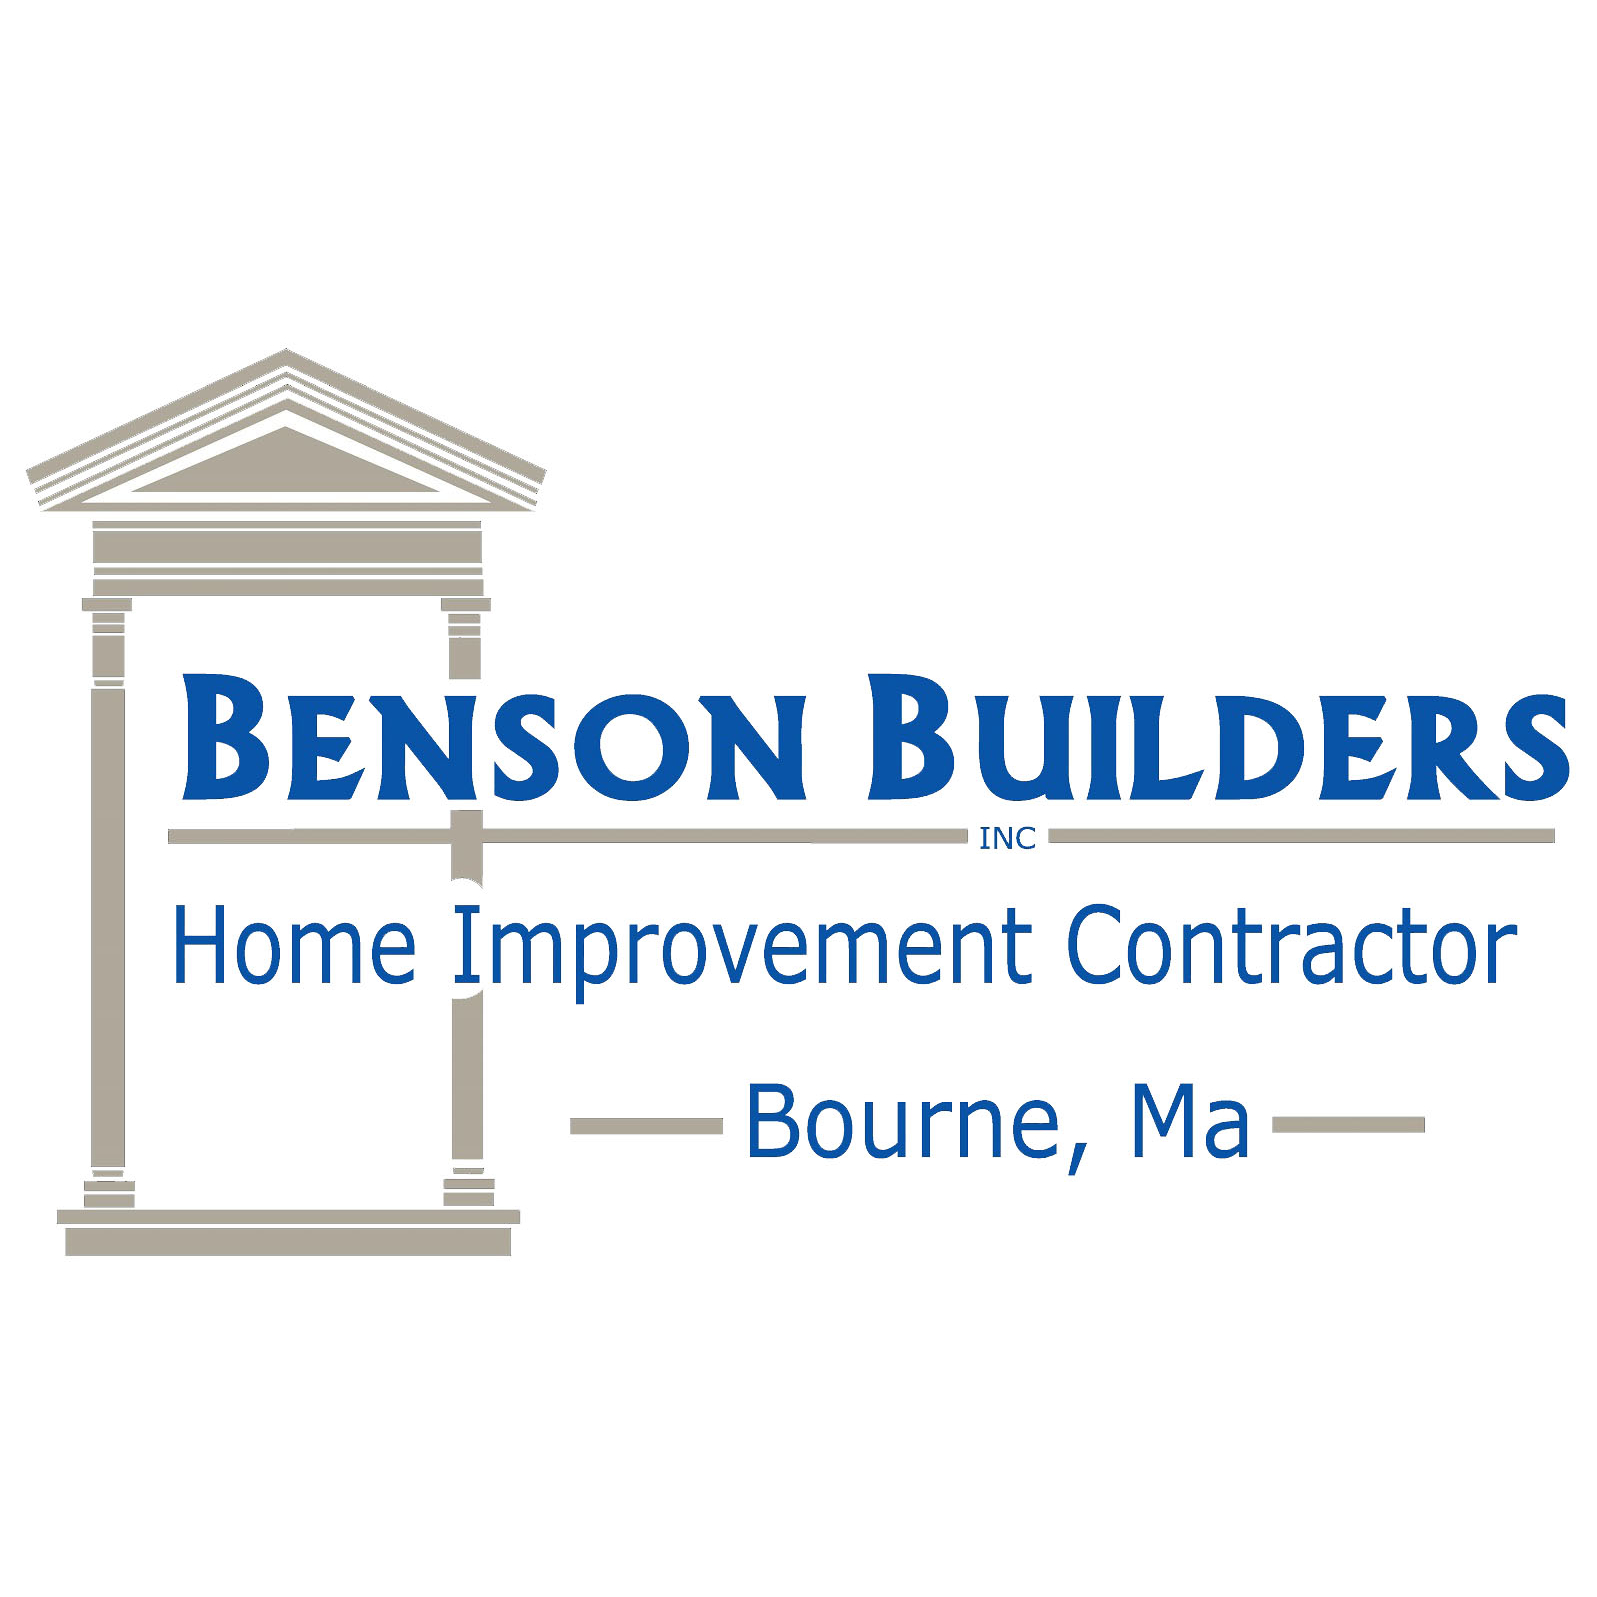 Benson Builders, Inc.